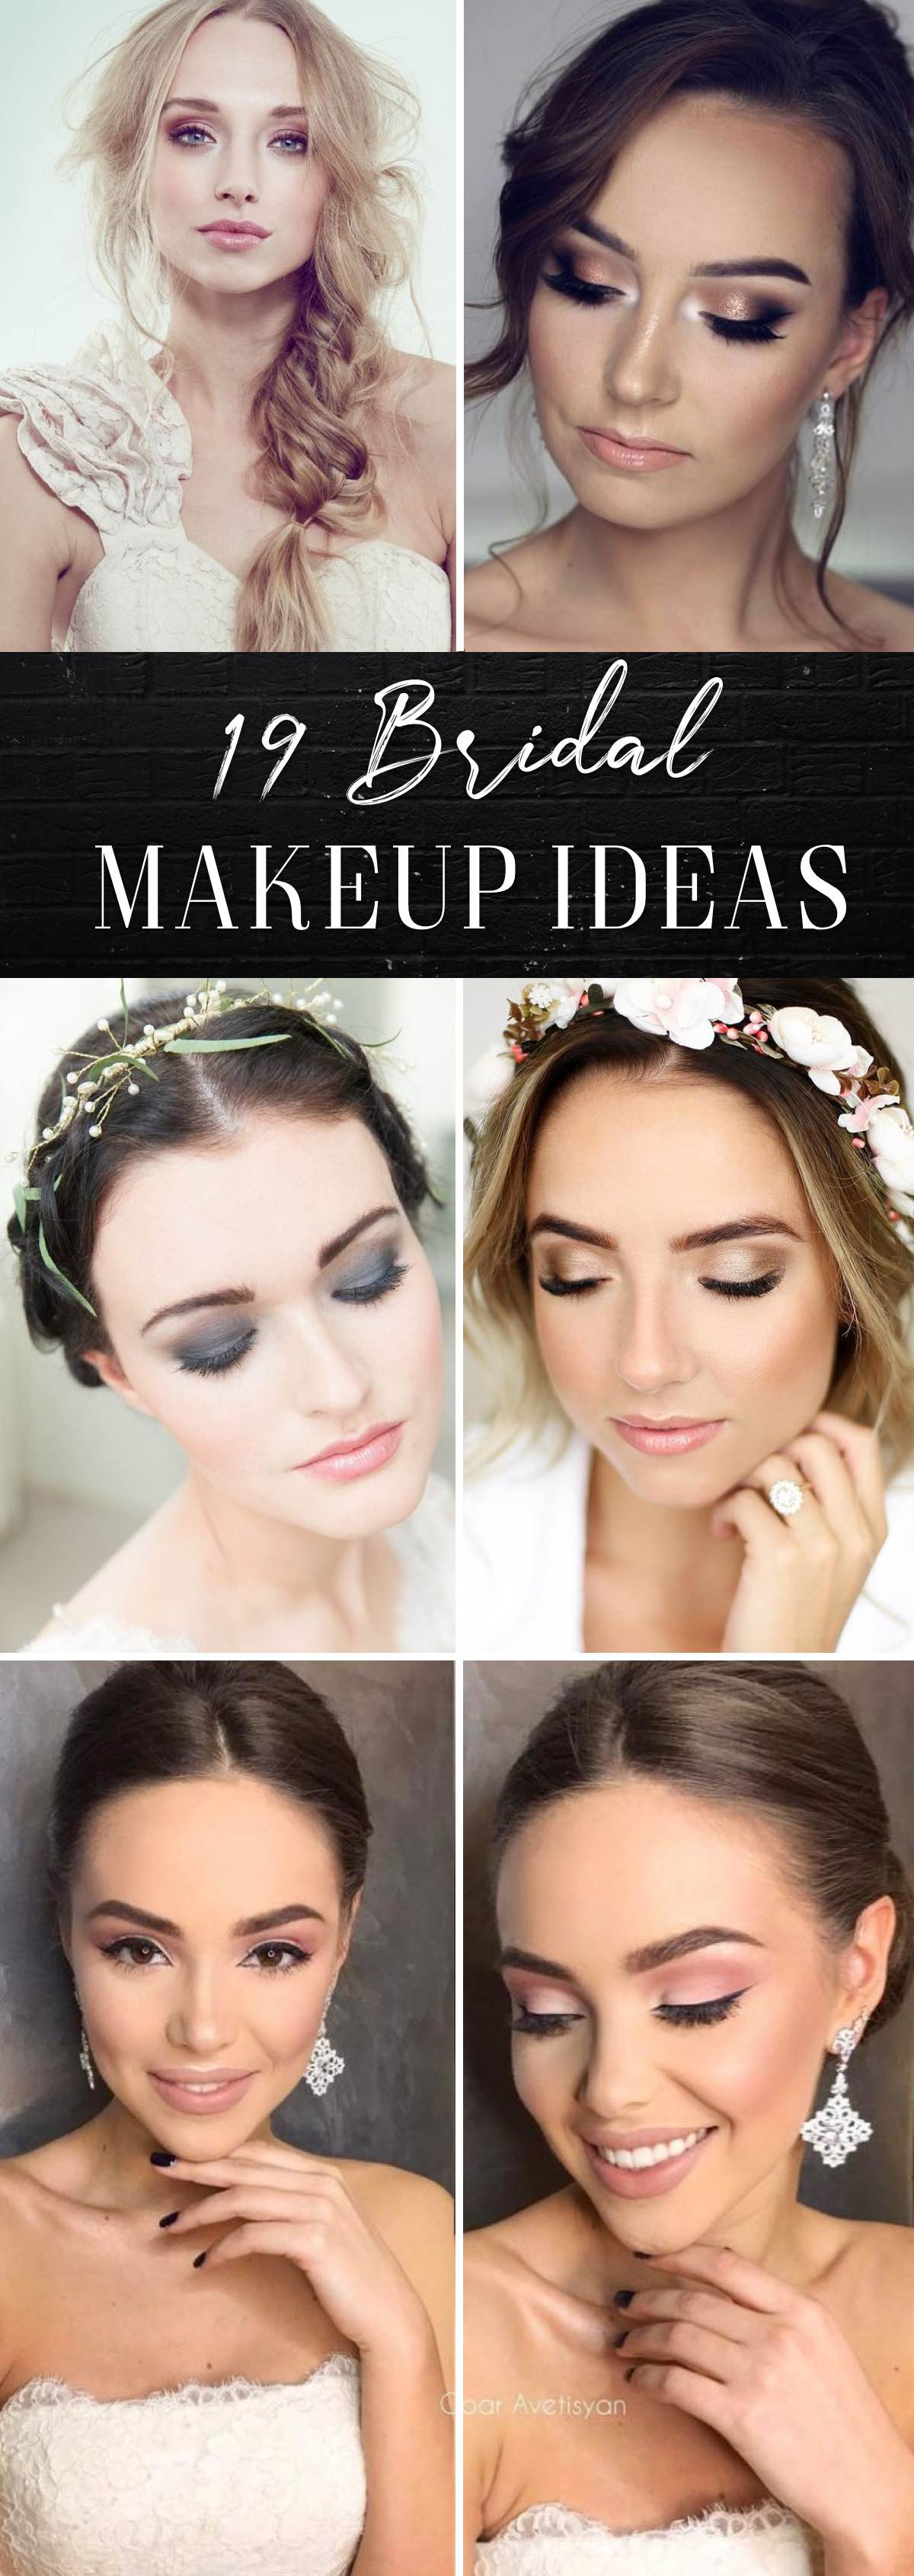 19 Bridal Makeup Ideas To Rock The Most Special Day of Your Life!